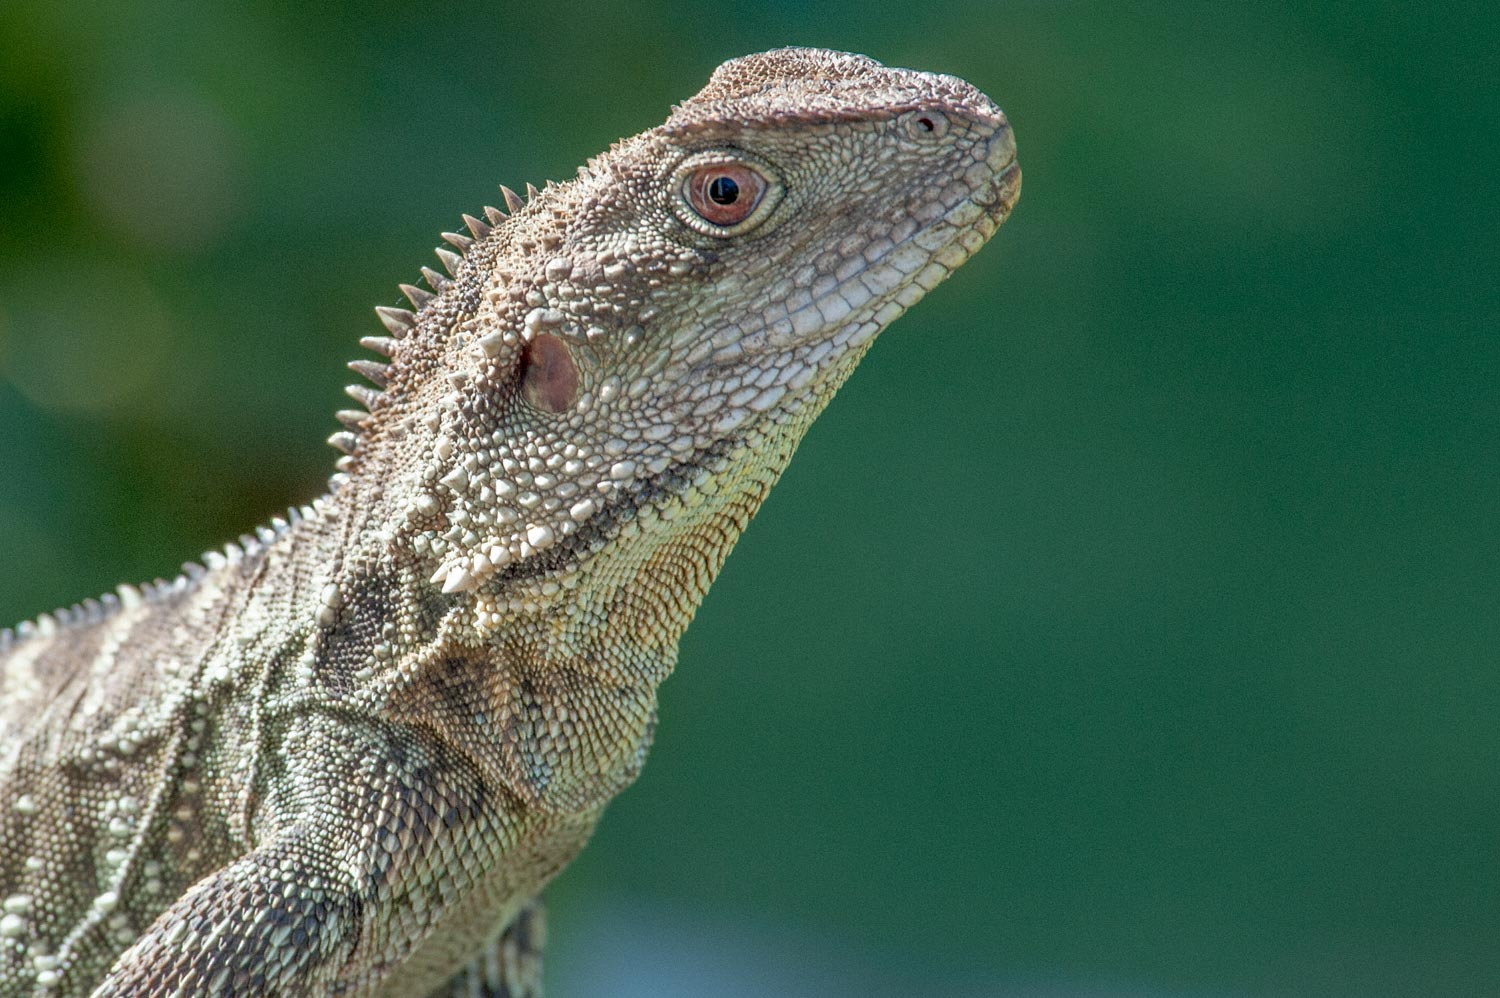 Warren-Hinder-LR-Eastern-Water-Dragon.jpg